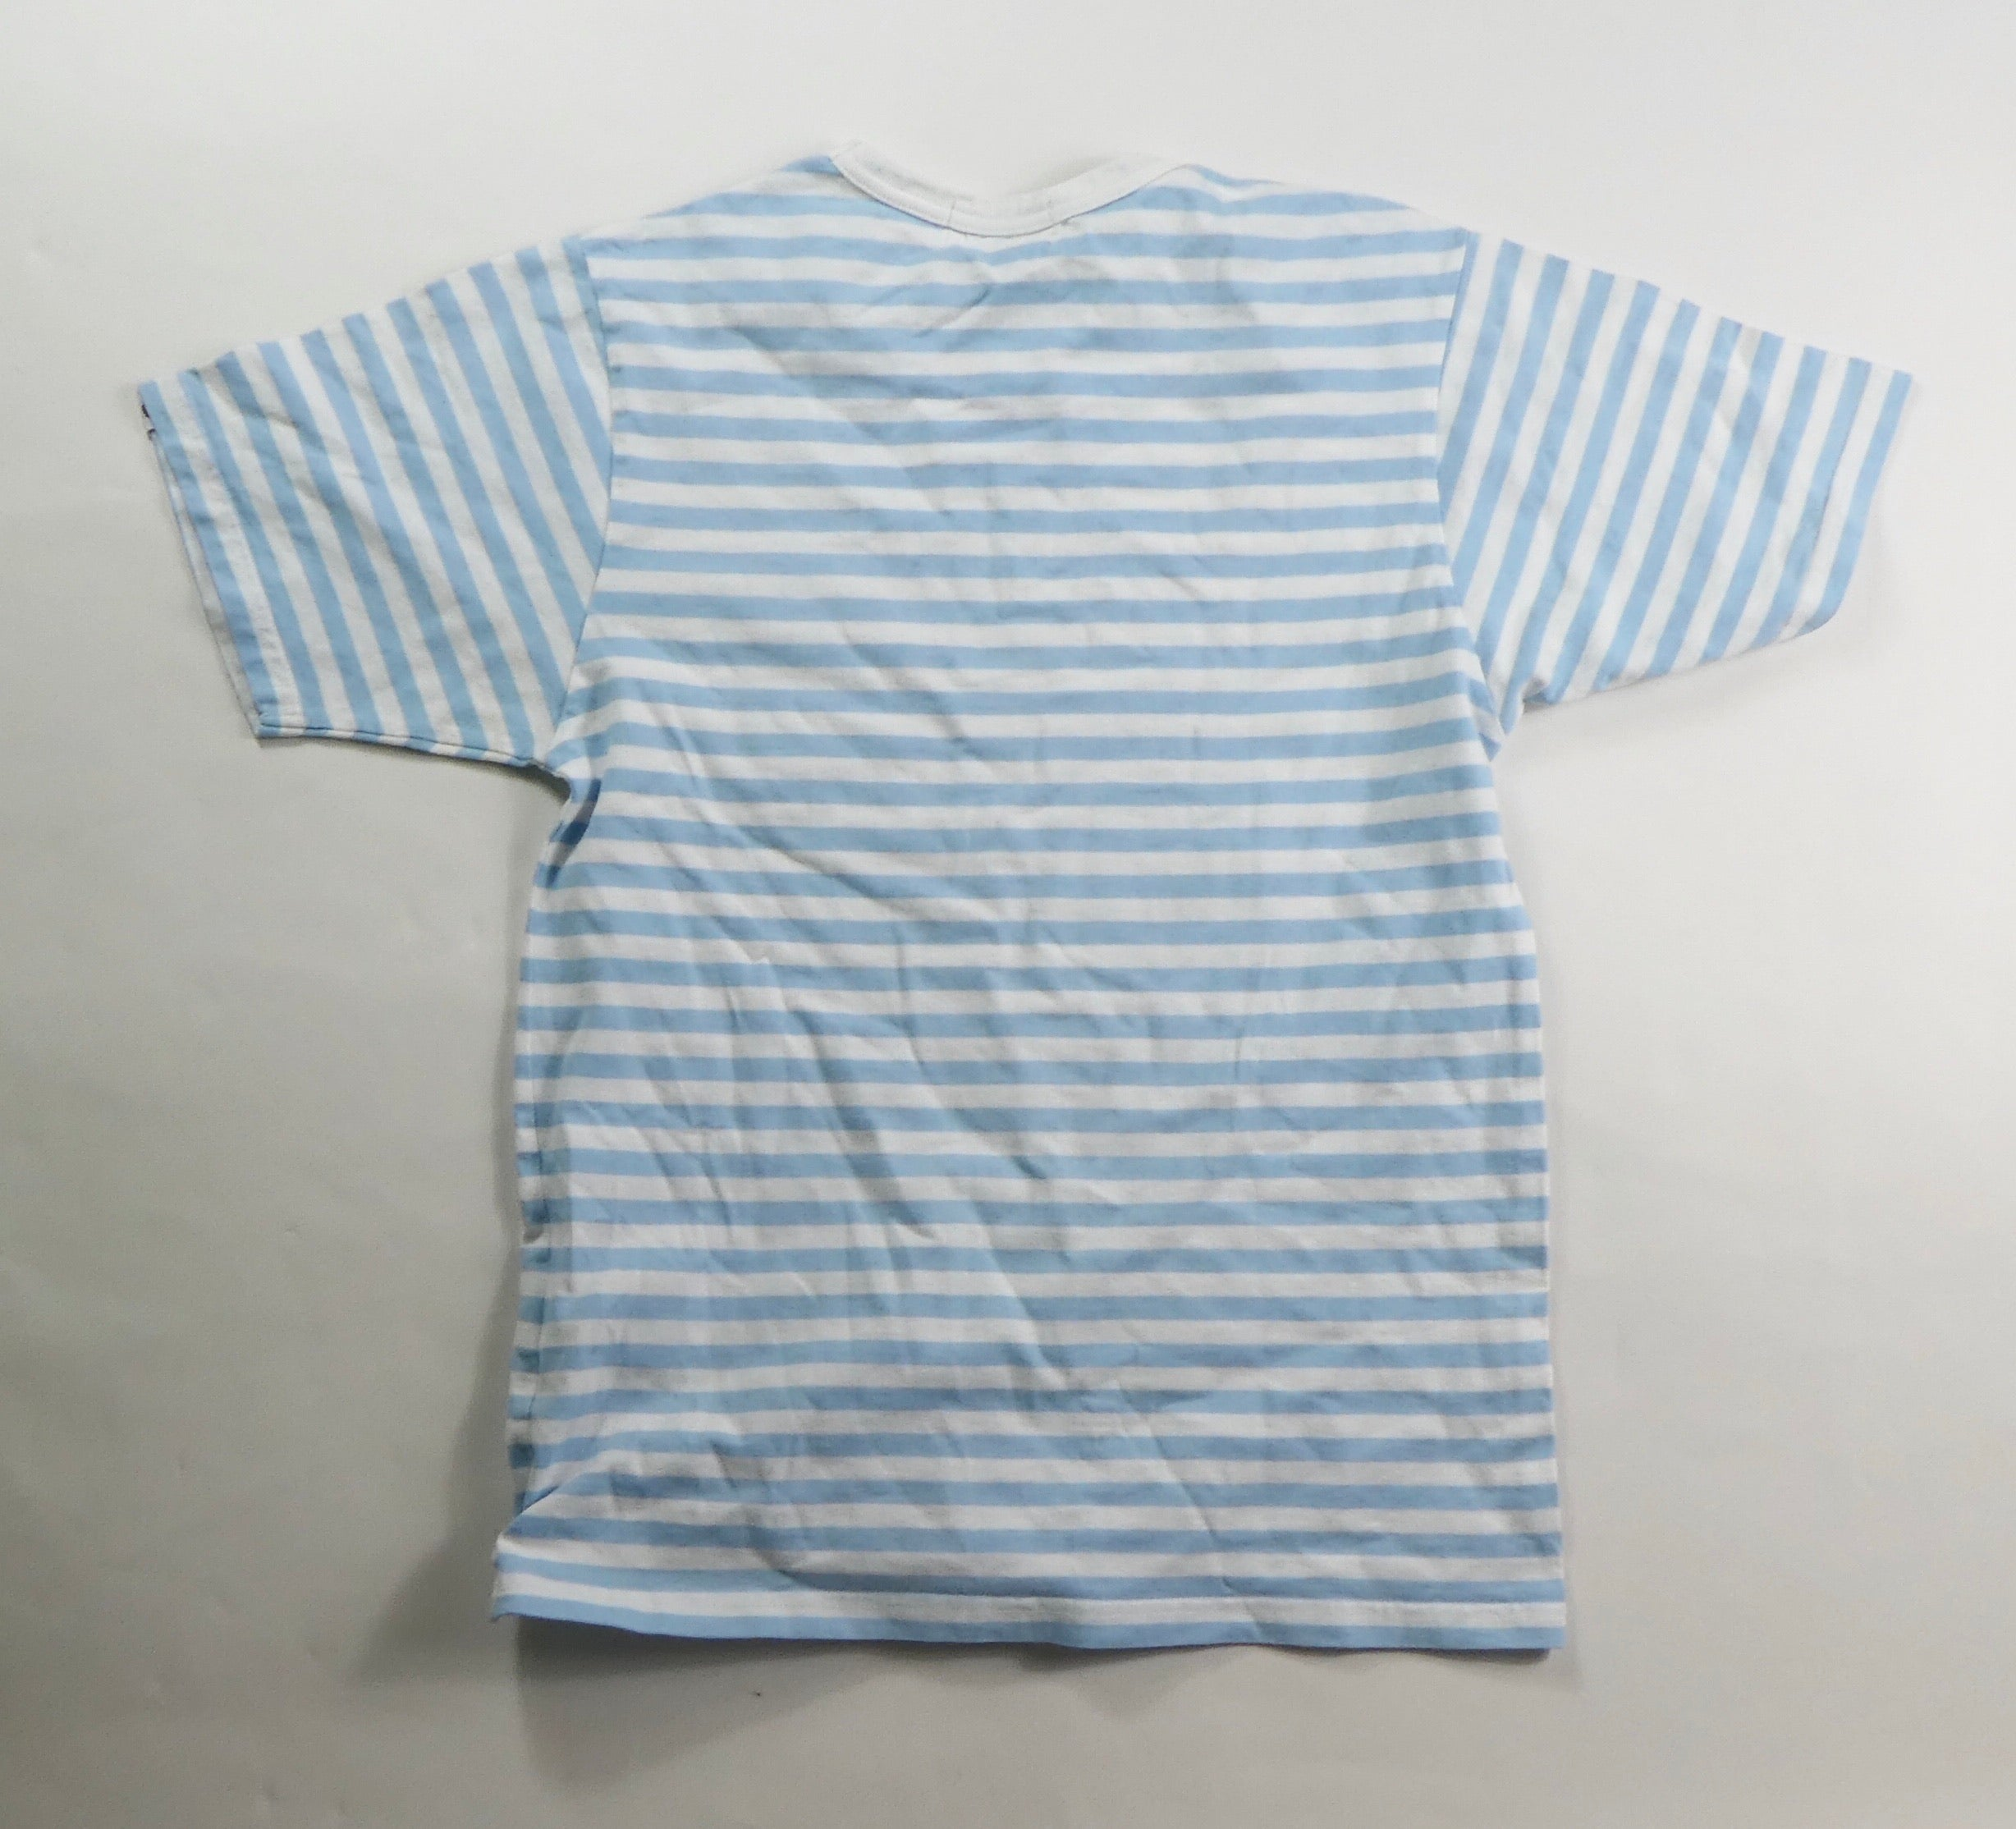 Bape New Season Striped T Shirt - Small